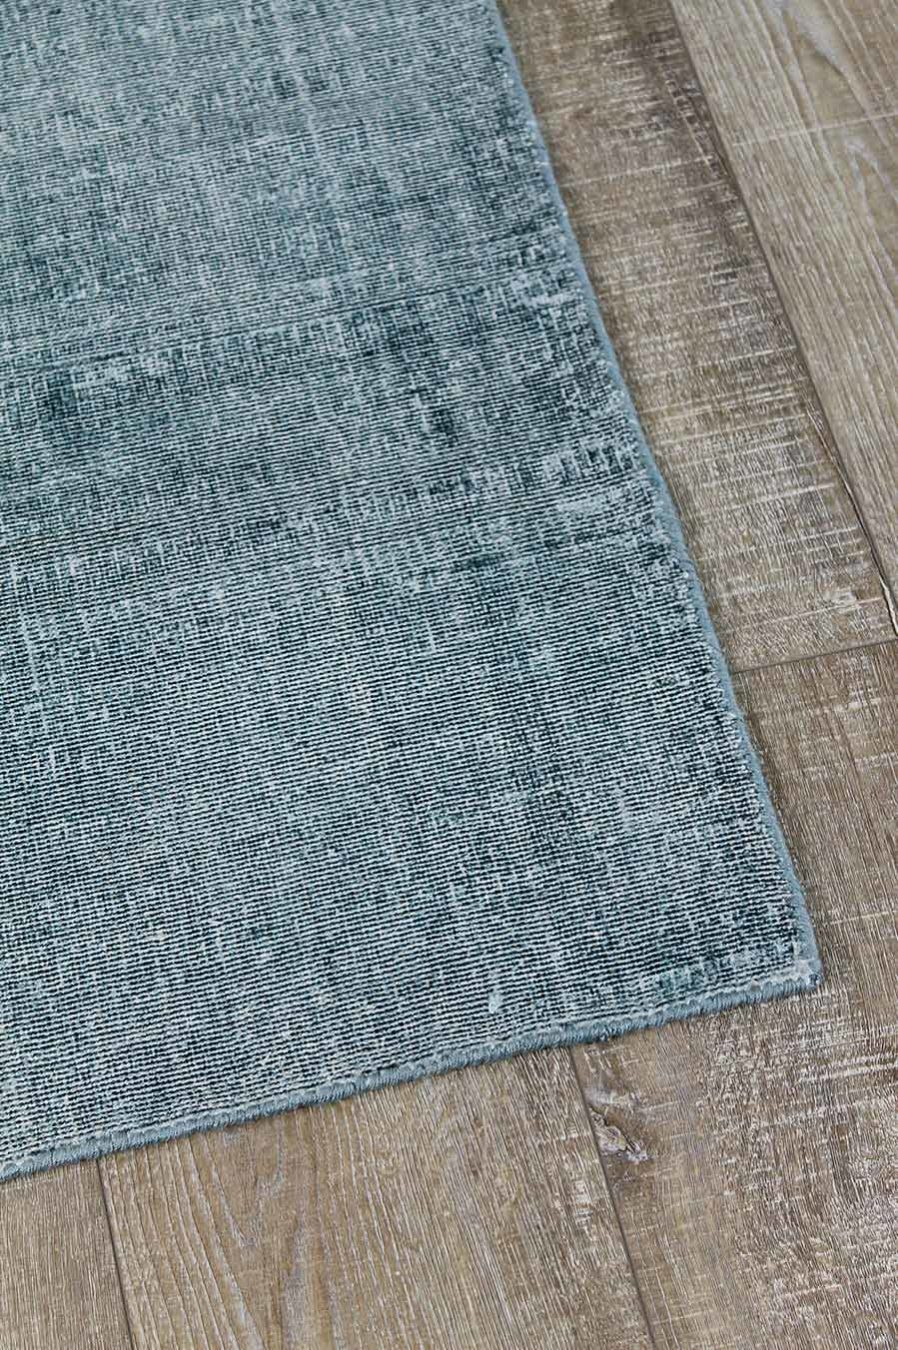 Detailed view of textured Rapture rug in teal blue colour